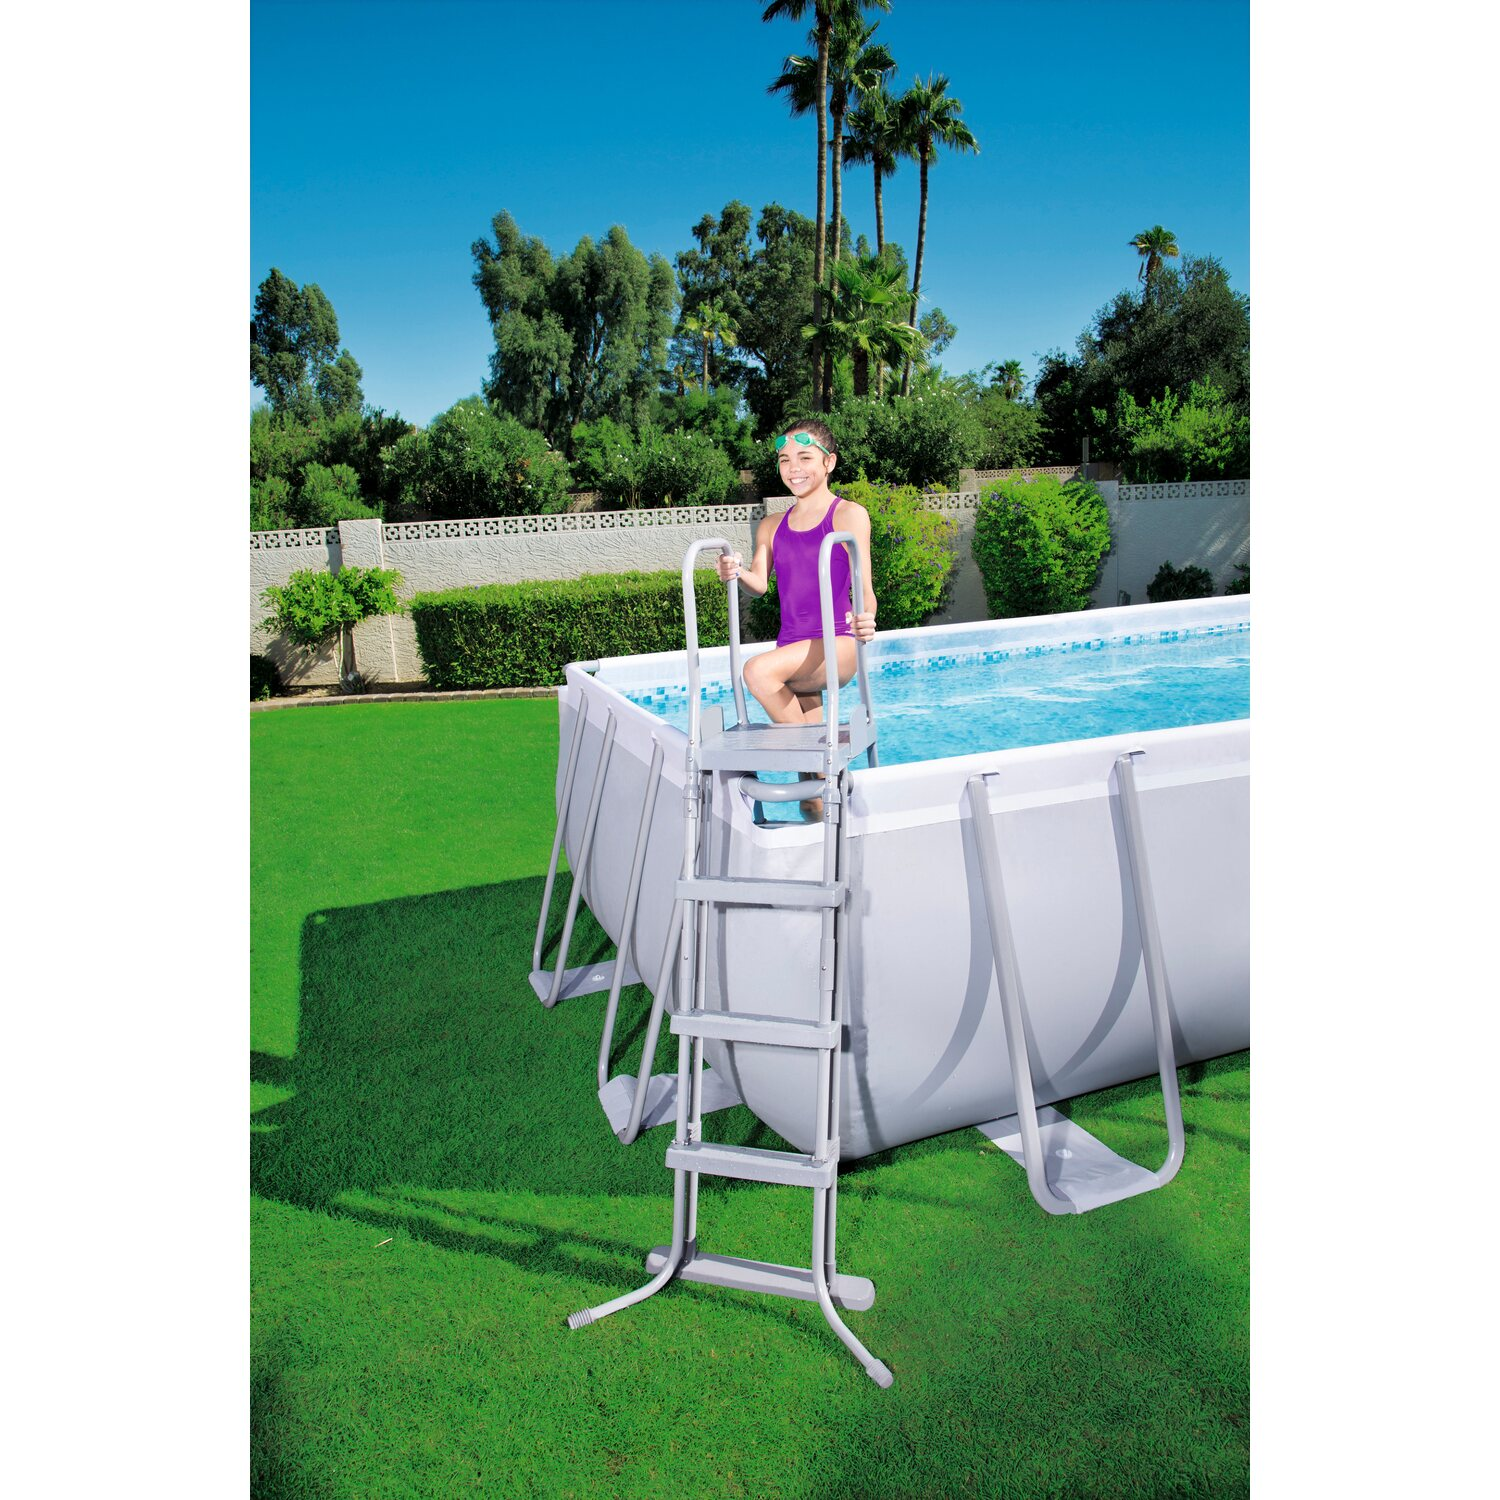 Bestway pool set power stahlrahmen 488 cm x 488 cm x 122 for Bestway pool hagebau